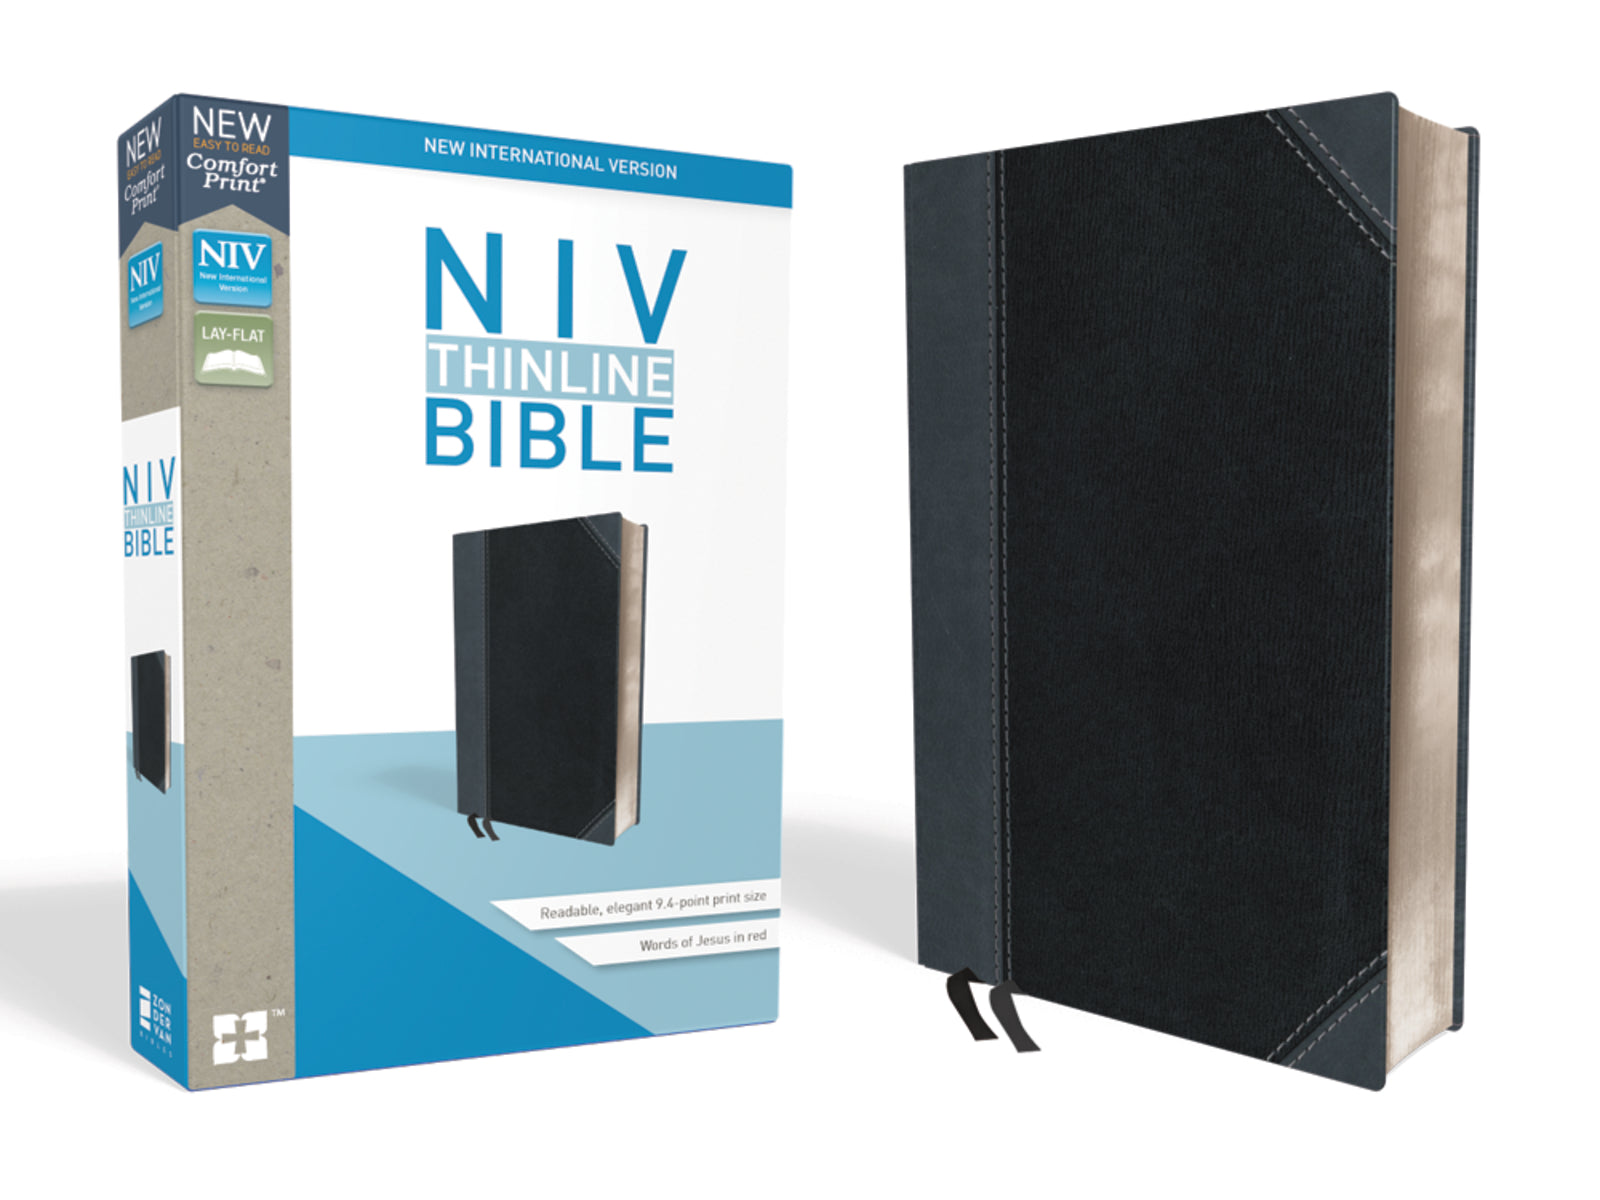 NIV-Thinline Bible Comfort Print- Black/Gray